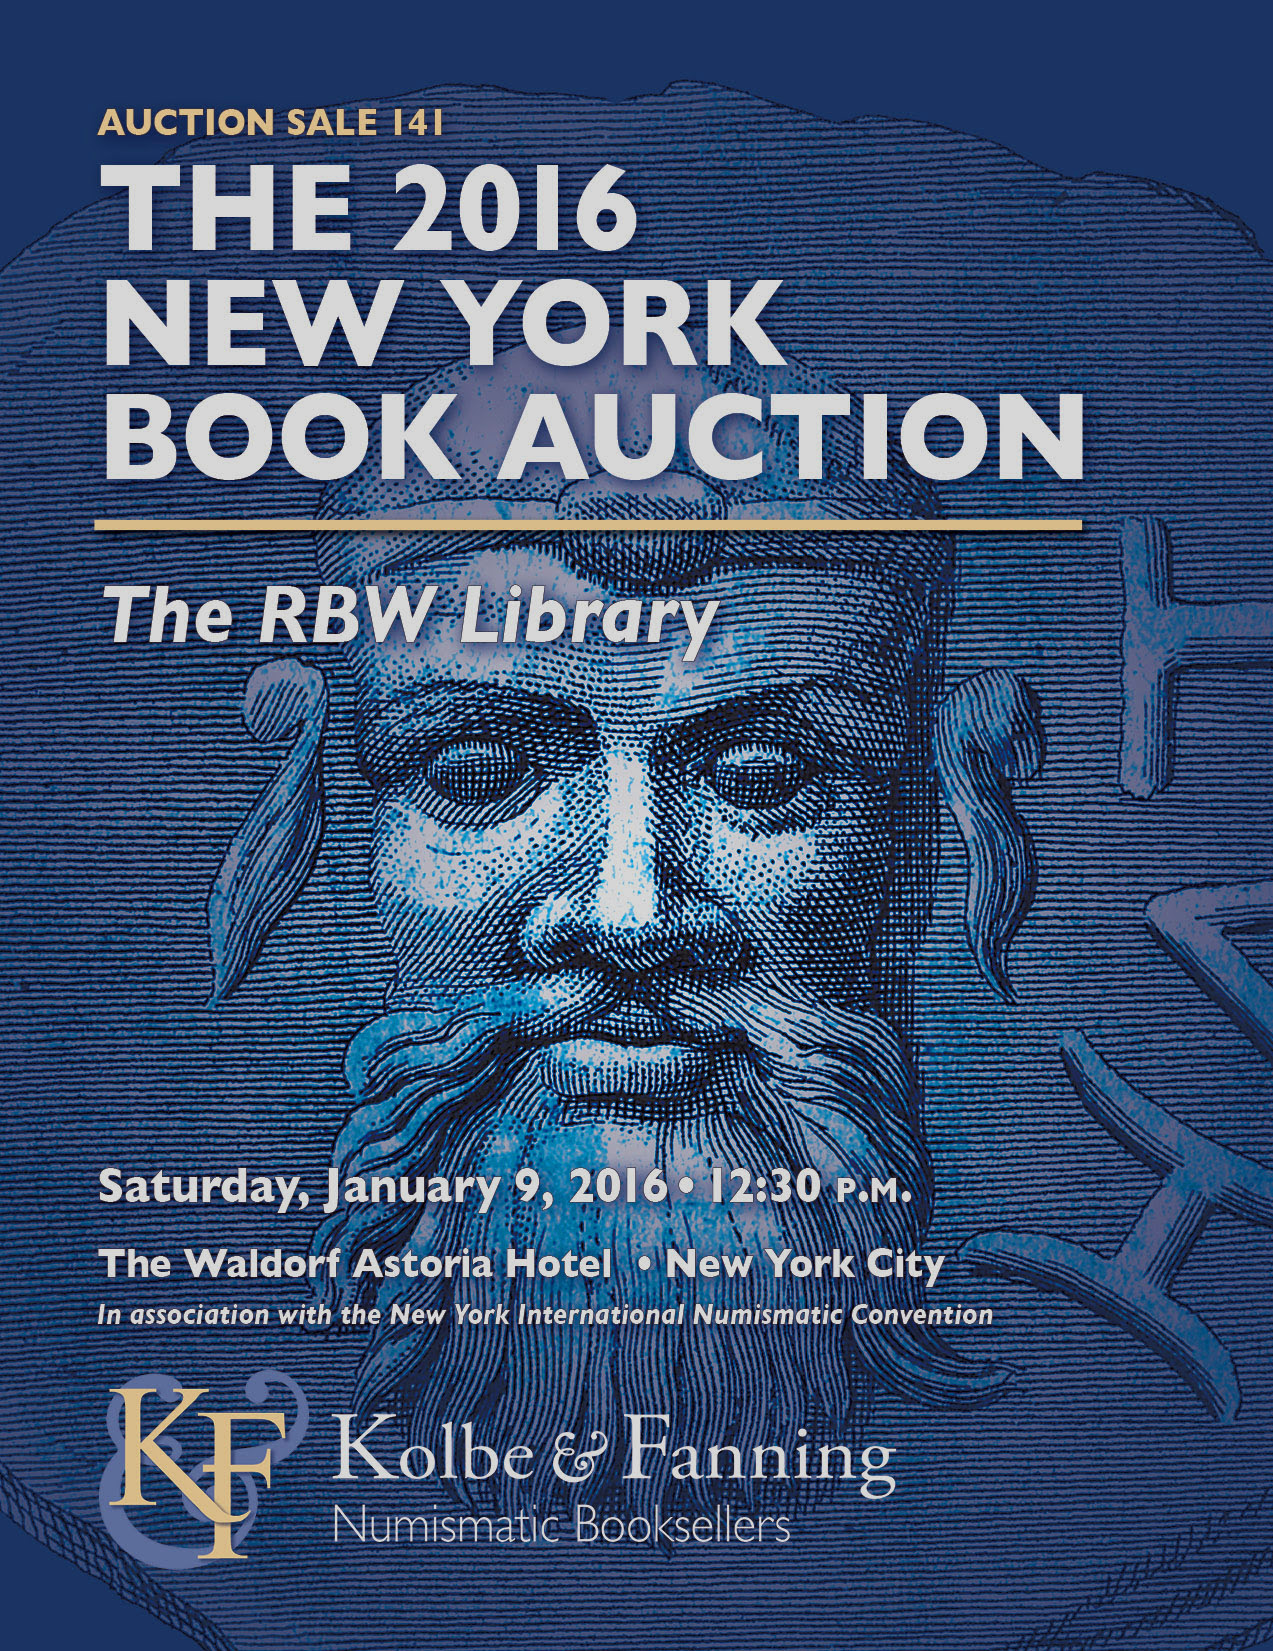 Kolbe & Fanning 2016 NY Book Auction flyer